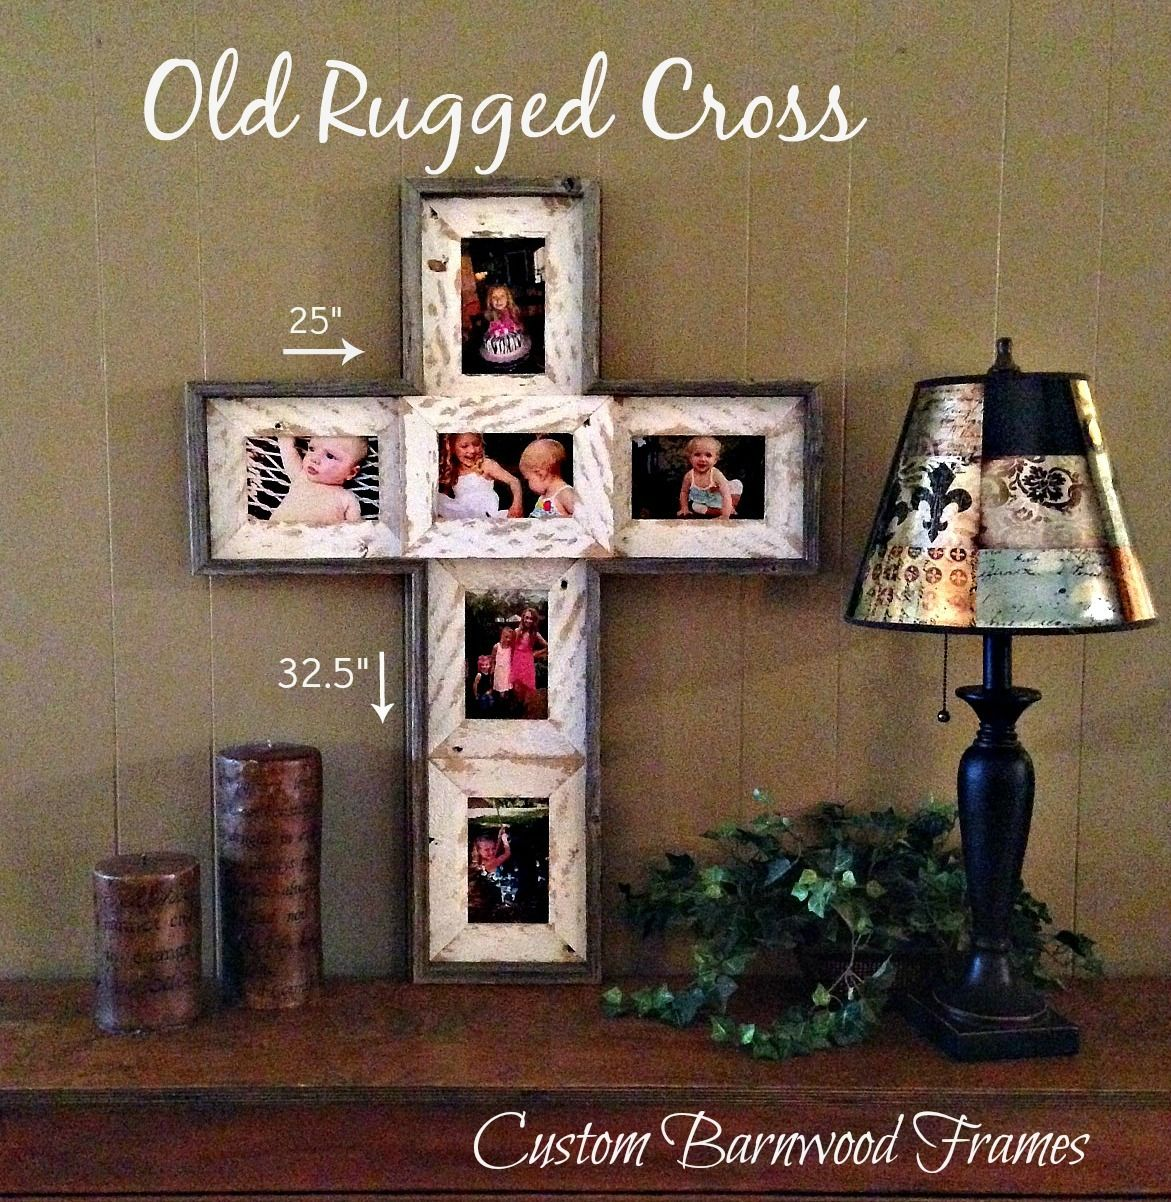 custom barnwood frames old rugged cross 3999 httpwww